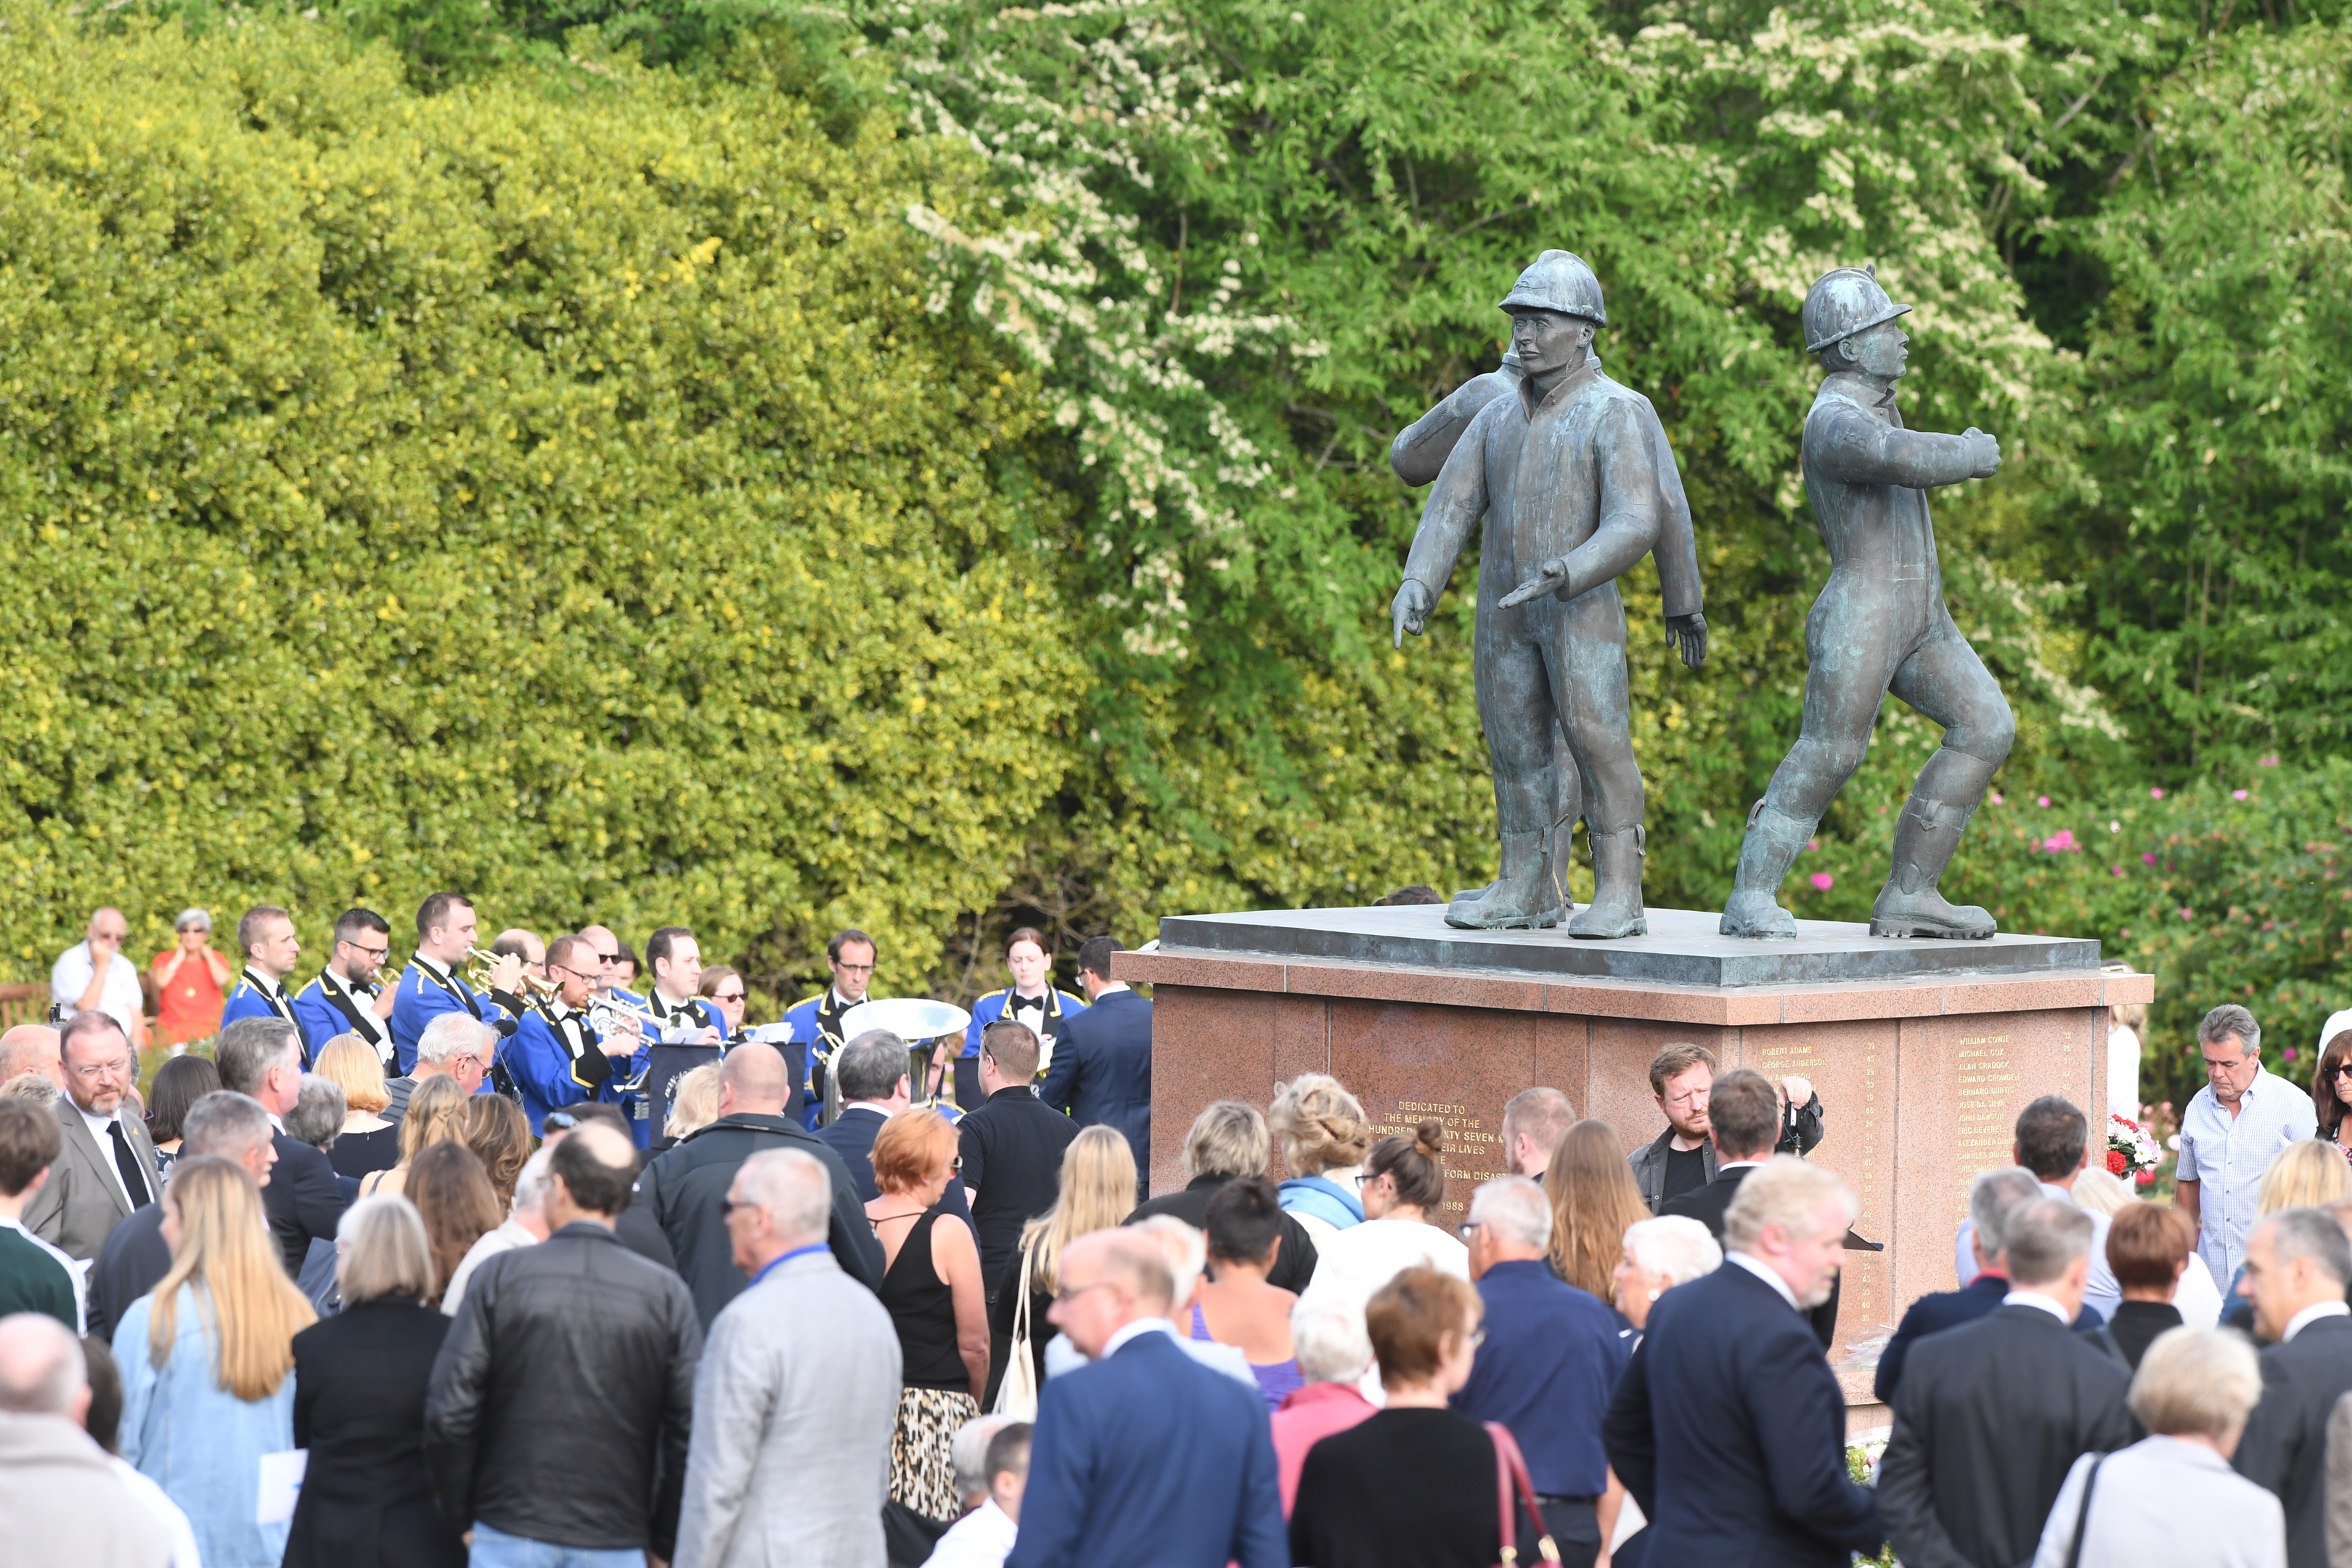 Piper Alpha memorial service at Hazlehead park in Aberdeen.